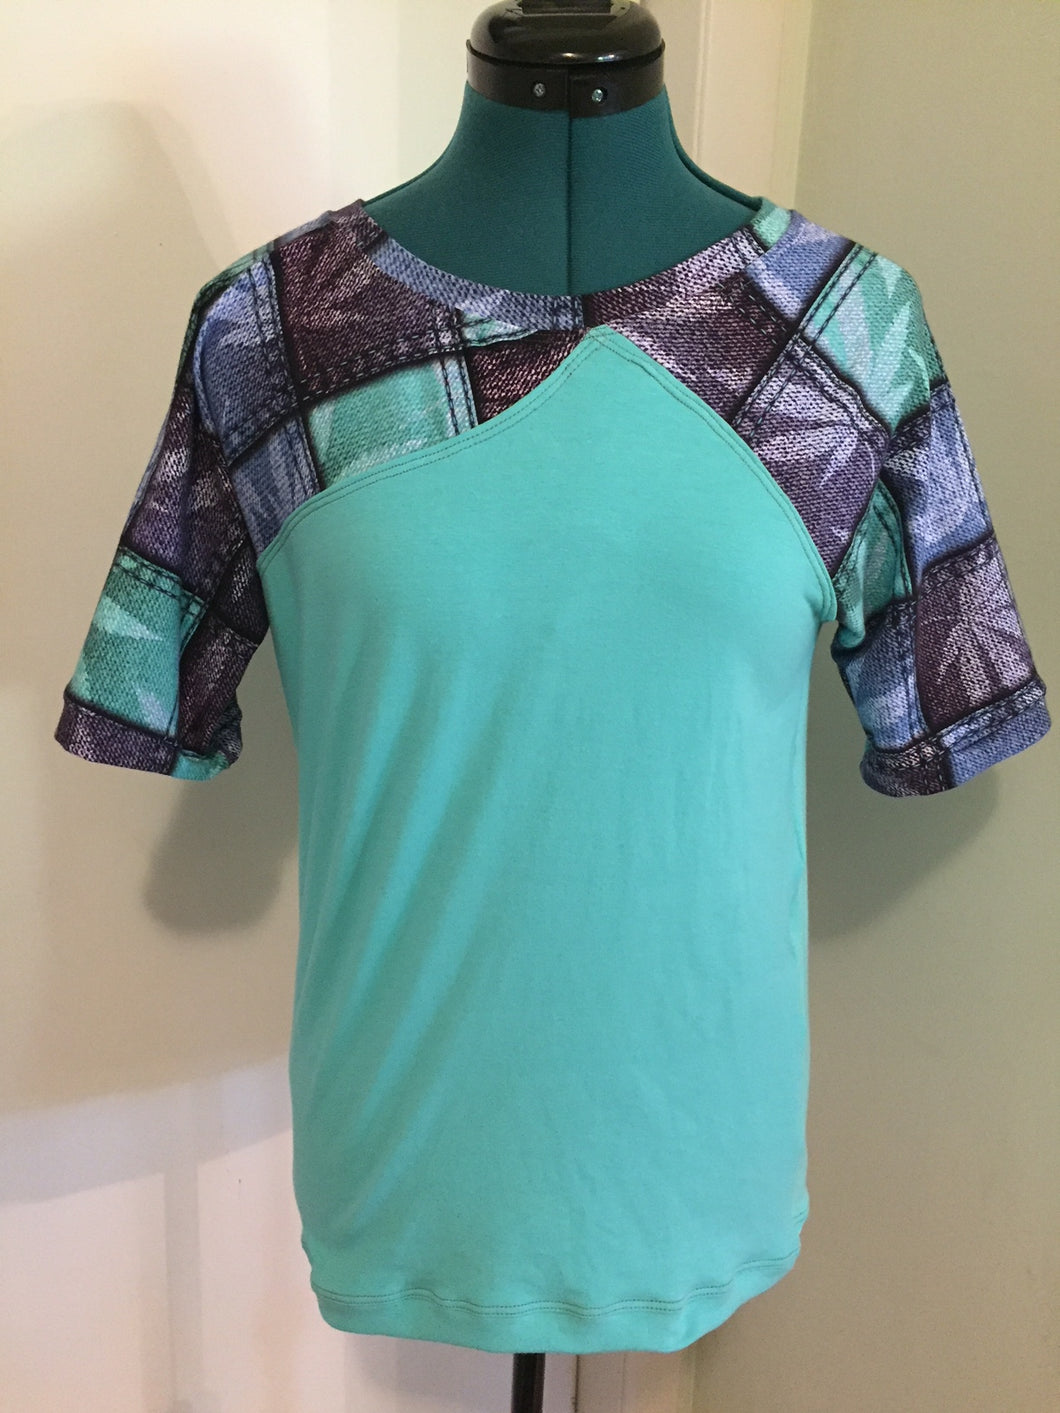 Canna Print Women's Raglan with a Twist - Size Small